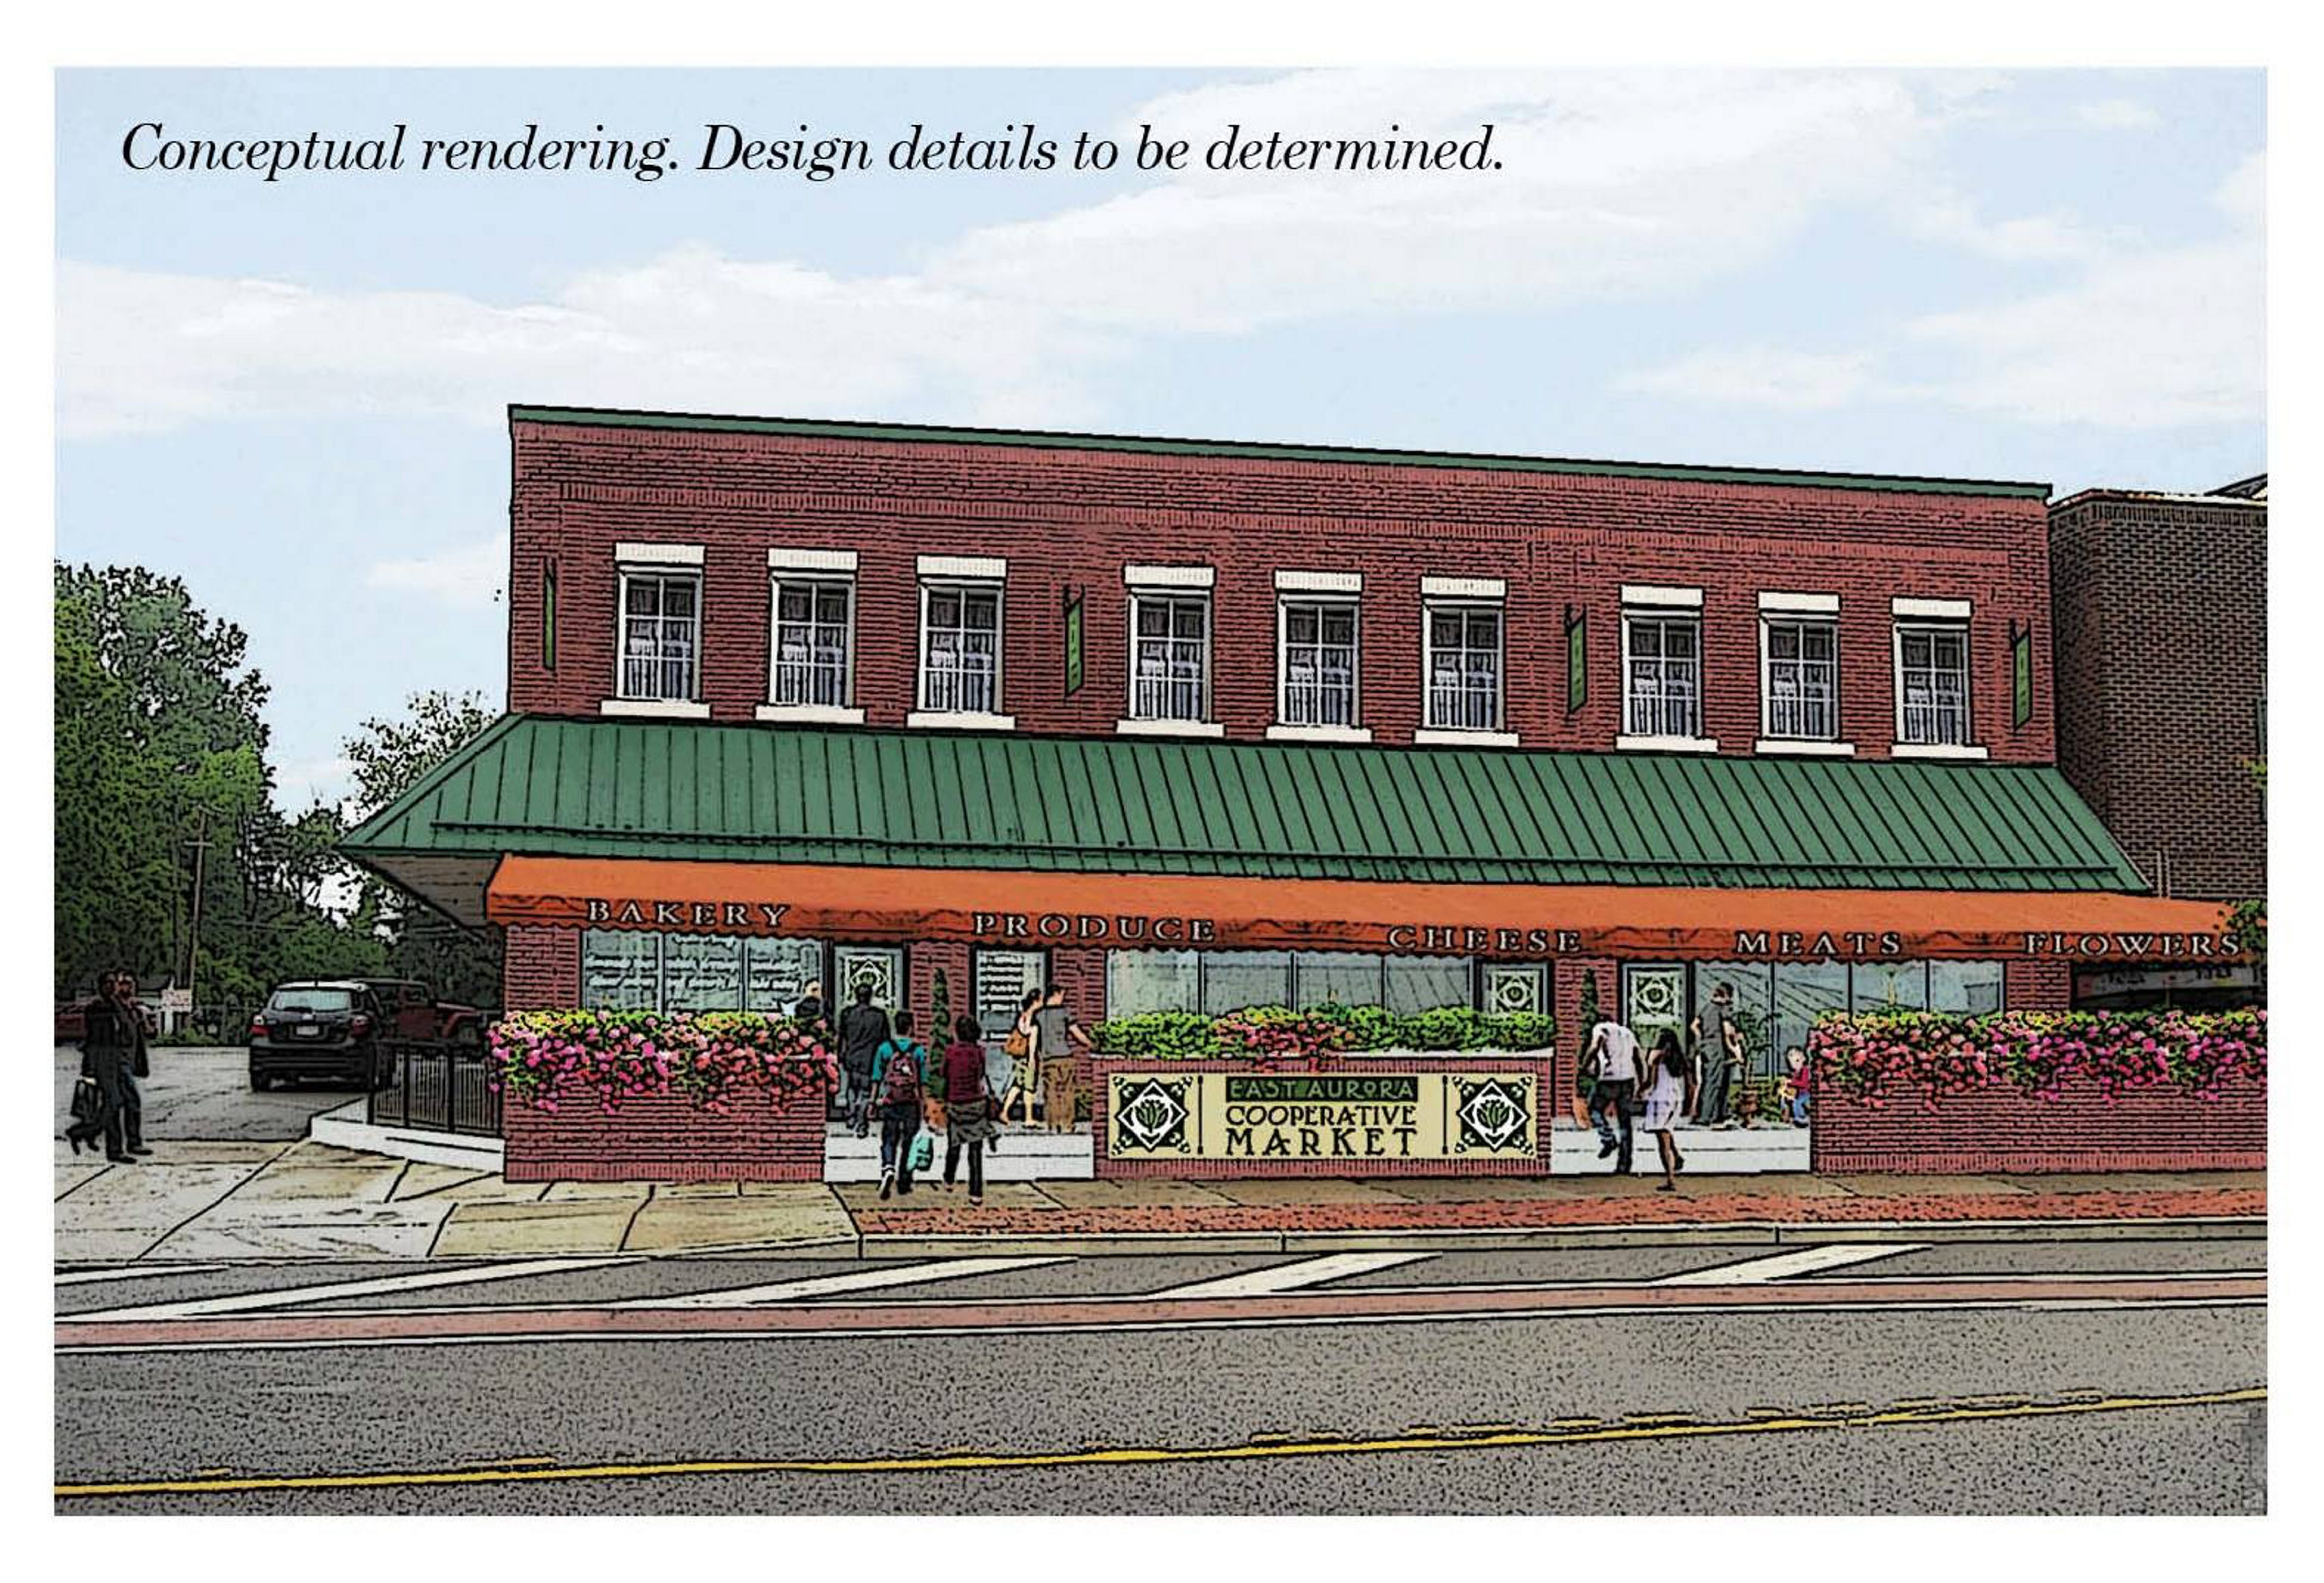 An artist's rendering of the East Aurora Food Cooperative Market, which will be located at 591 Main St., East Aurora.